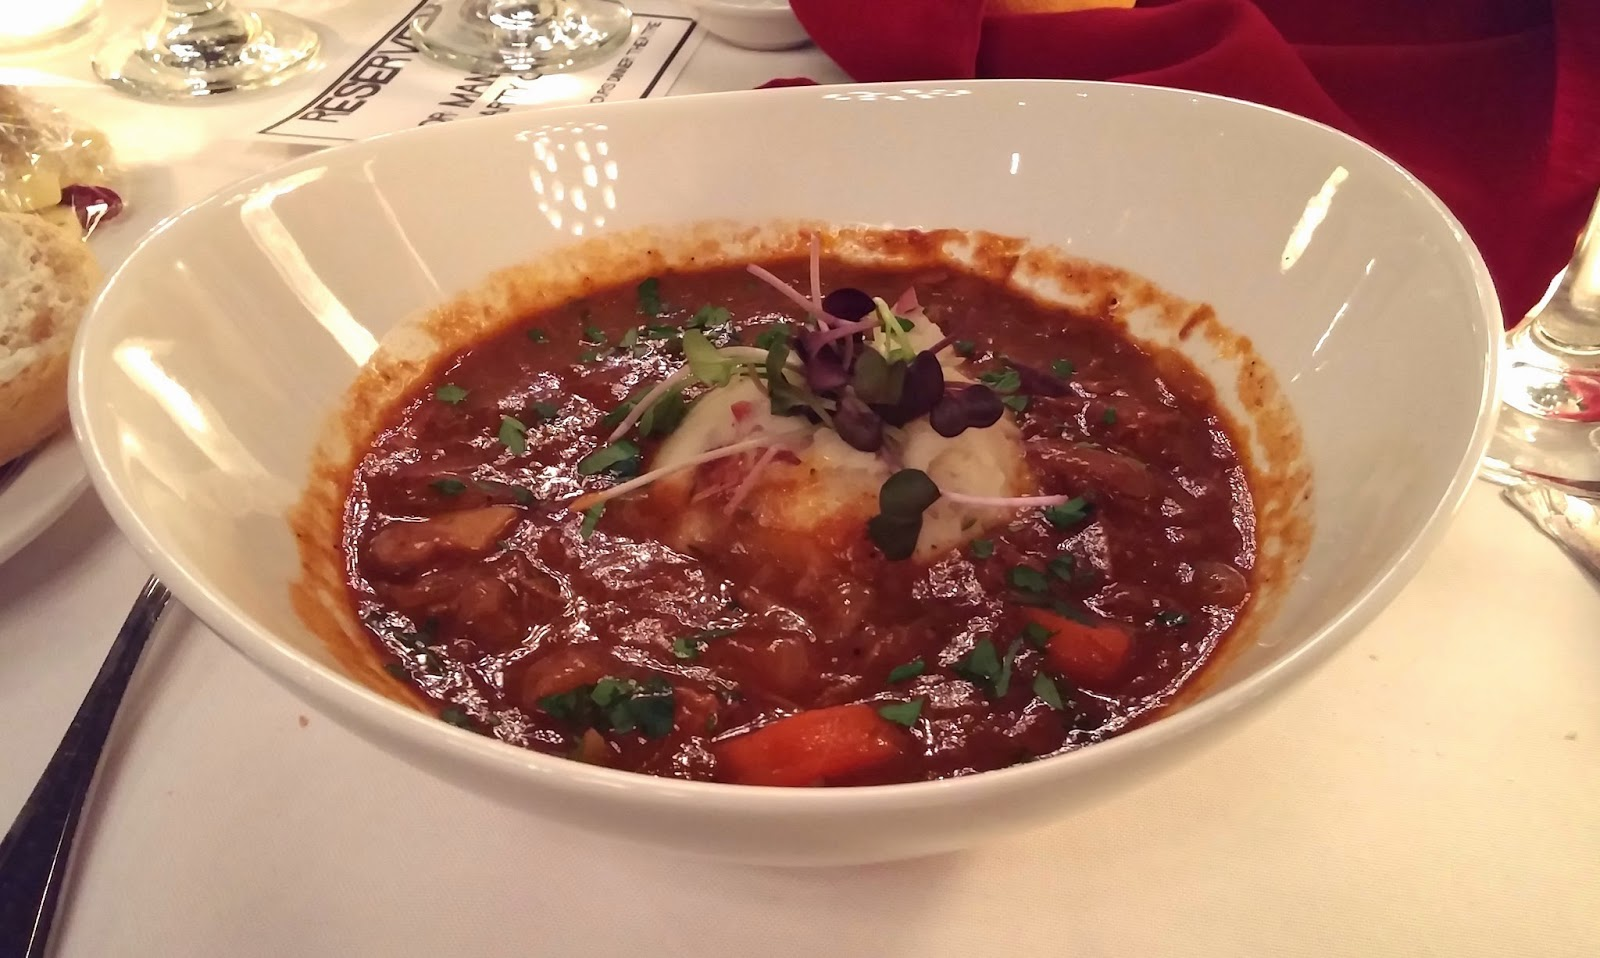 Mysteriously Yours Dinner Theatre: Getting Hitched - Provençale beef stew